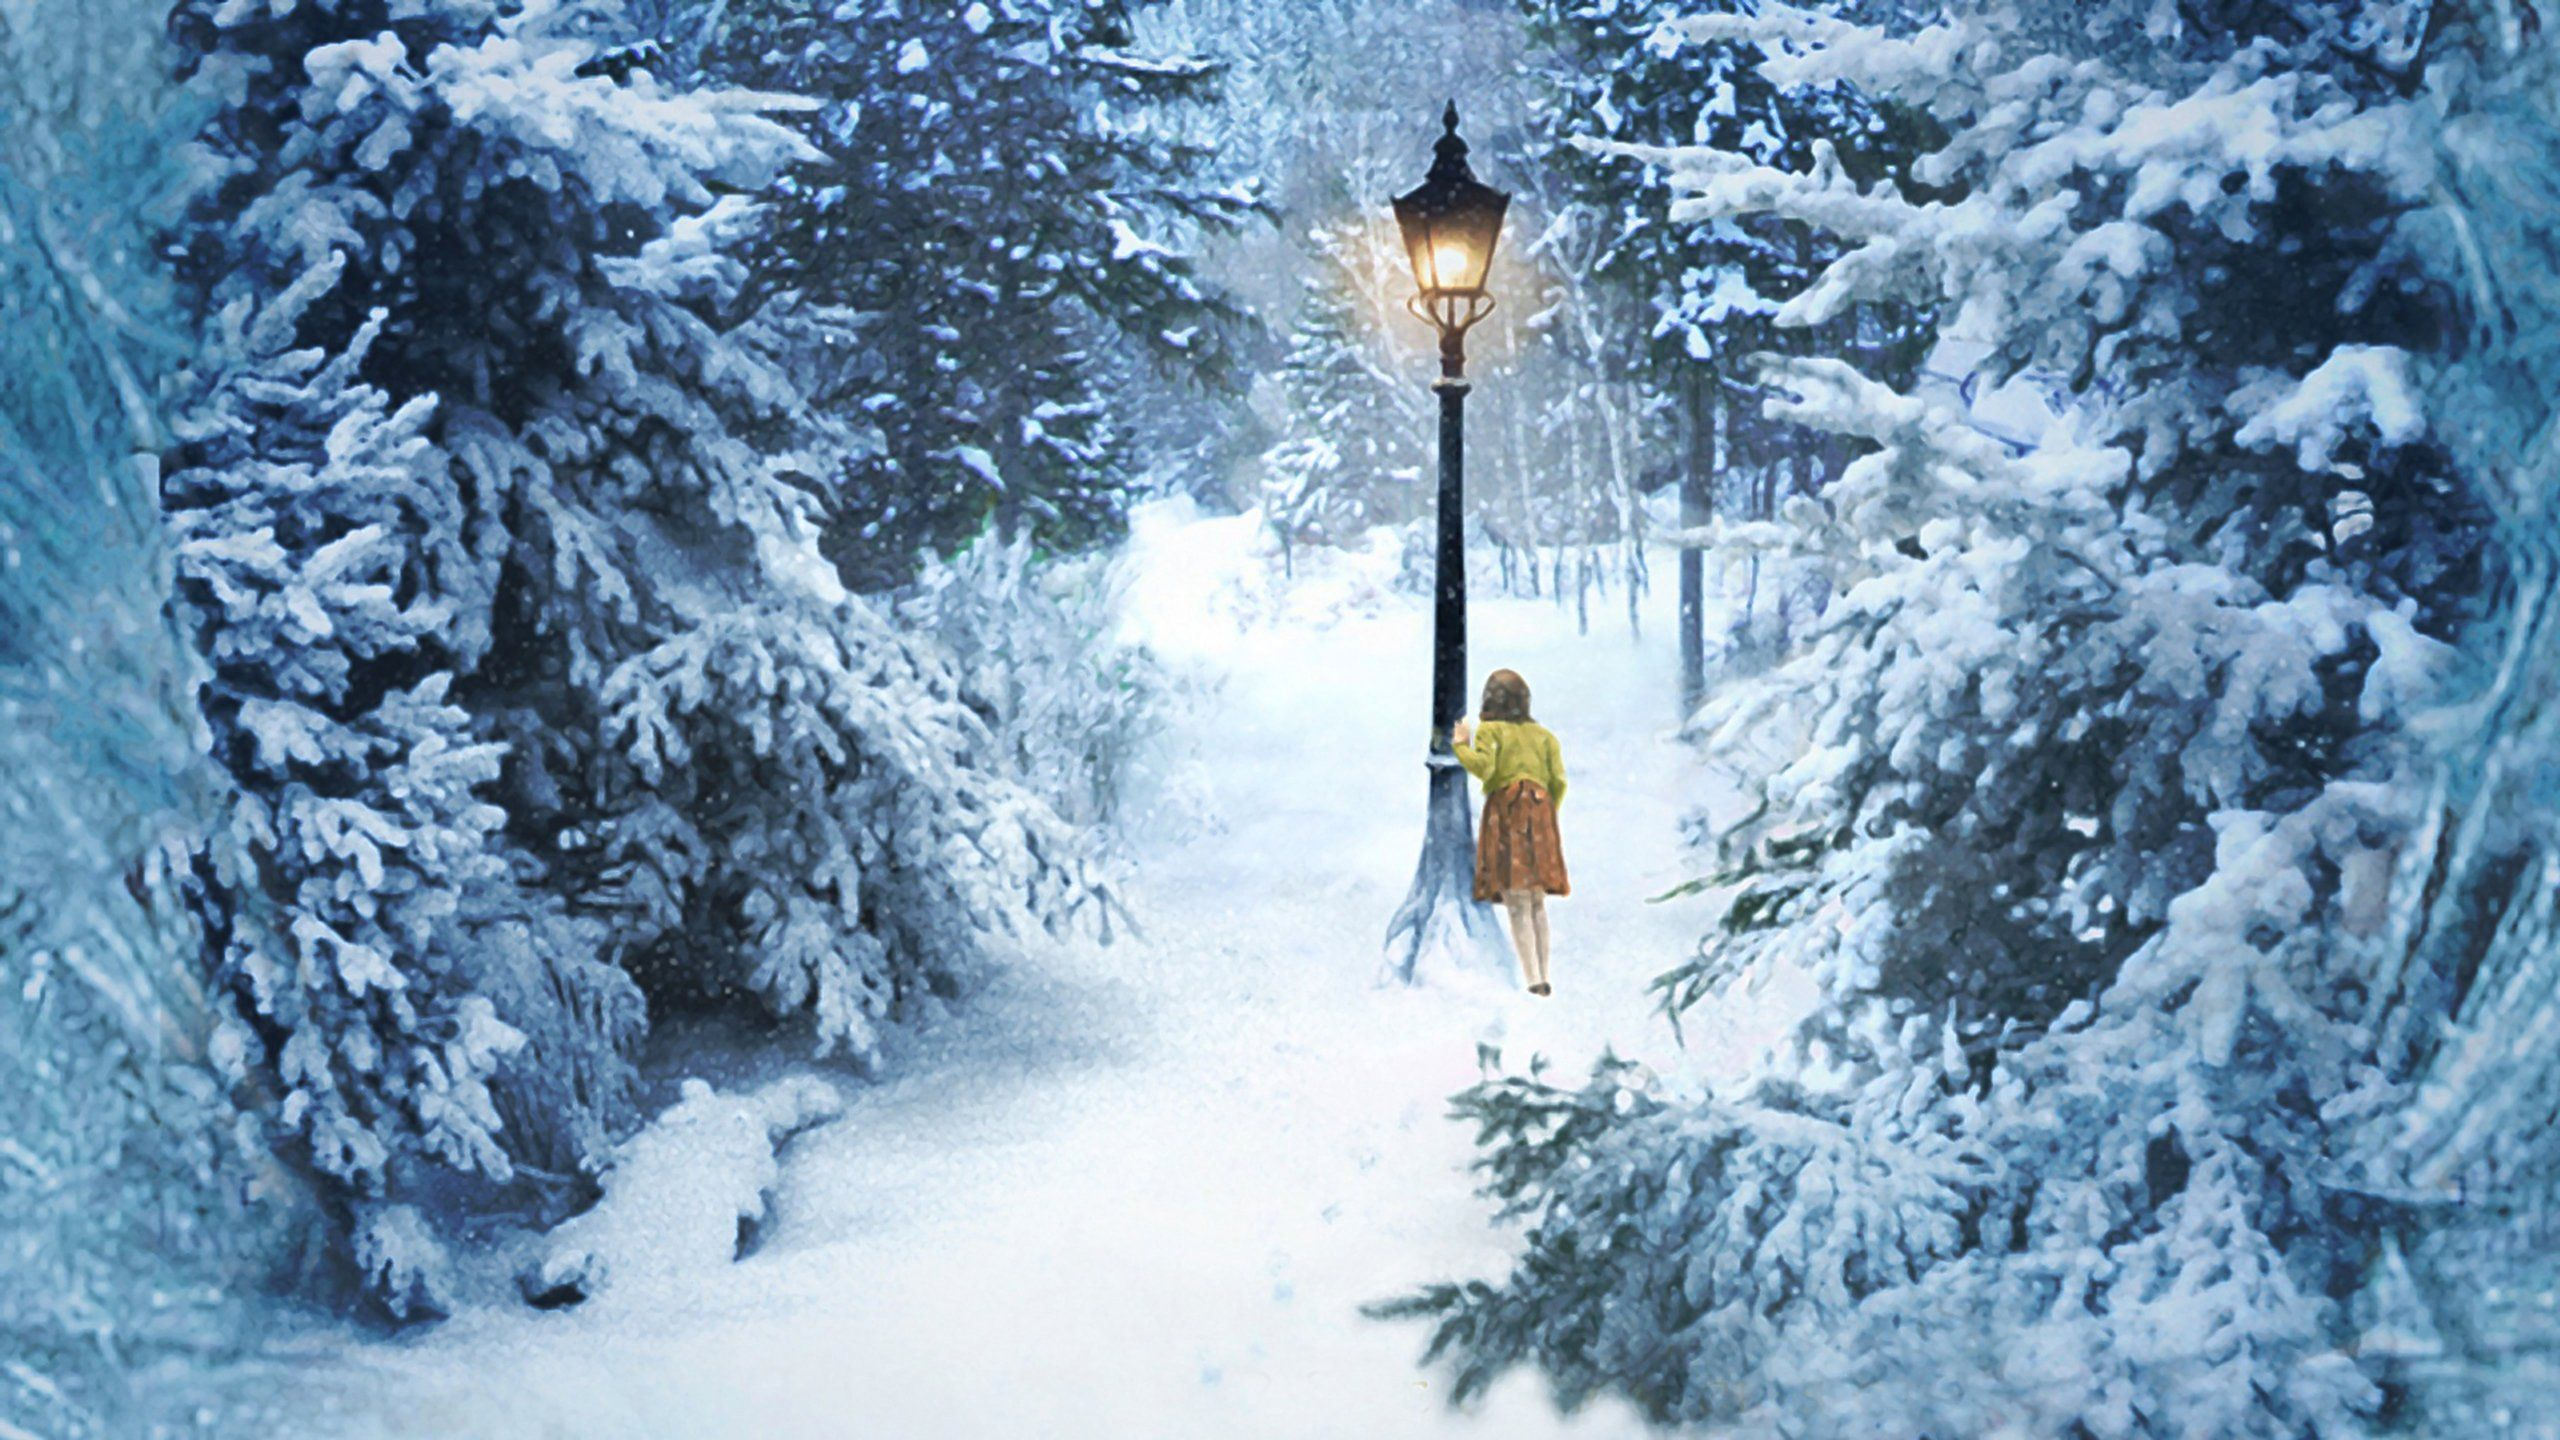 Narnia Wallpapers   Top Narnia Backgrounds   WallpaperAccess 2560x1440